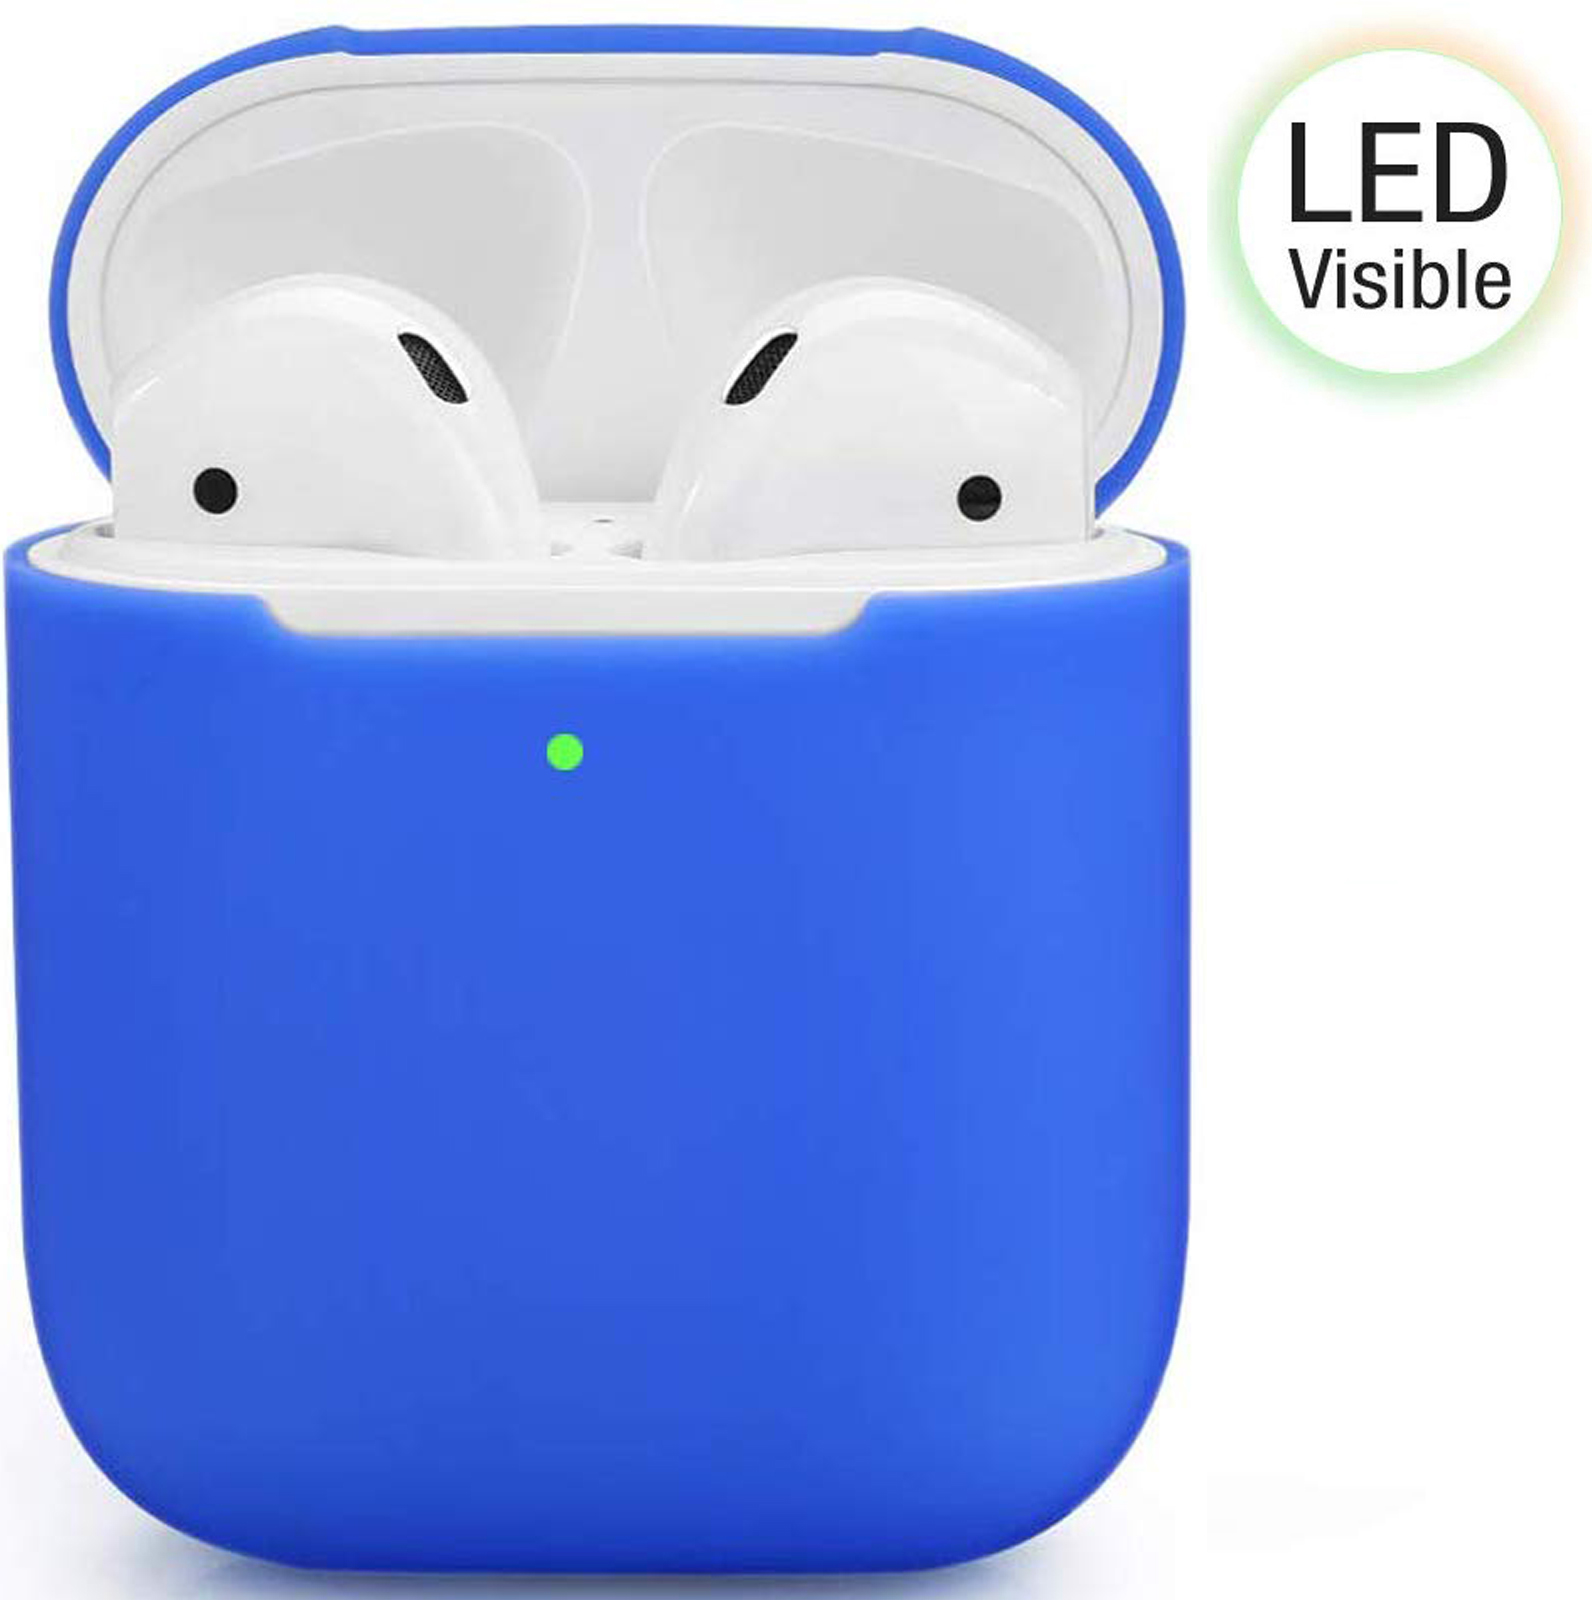 New-Silicone-TPU-Soft-Skin-Case-For-Apple-Airpods-1-2-Earphones-Charger-Cover miniatura 82